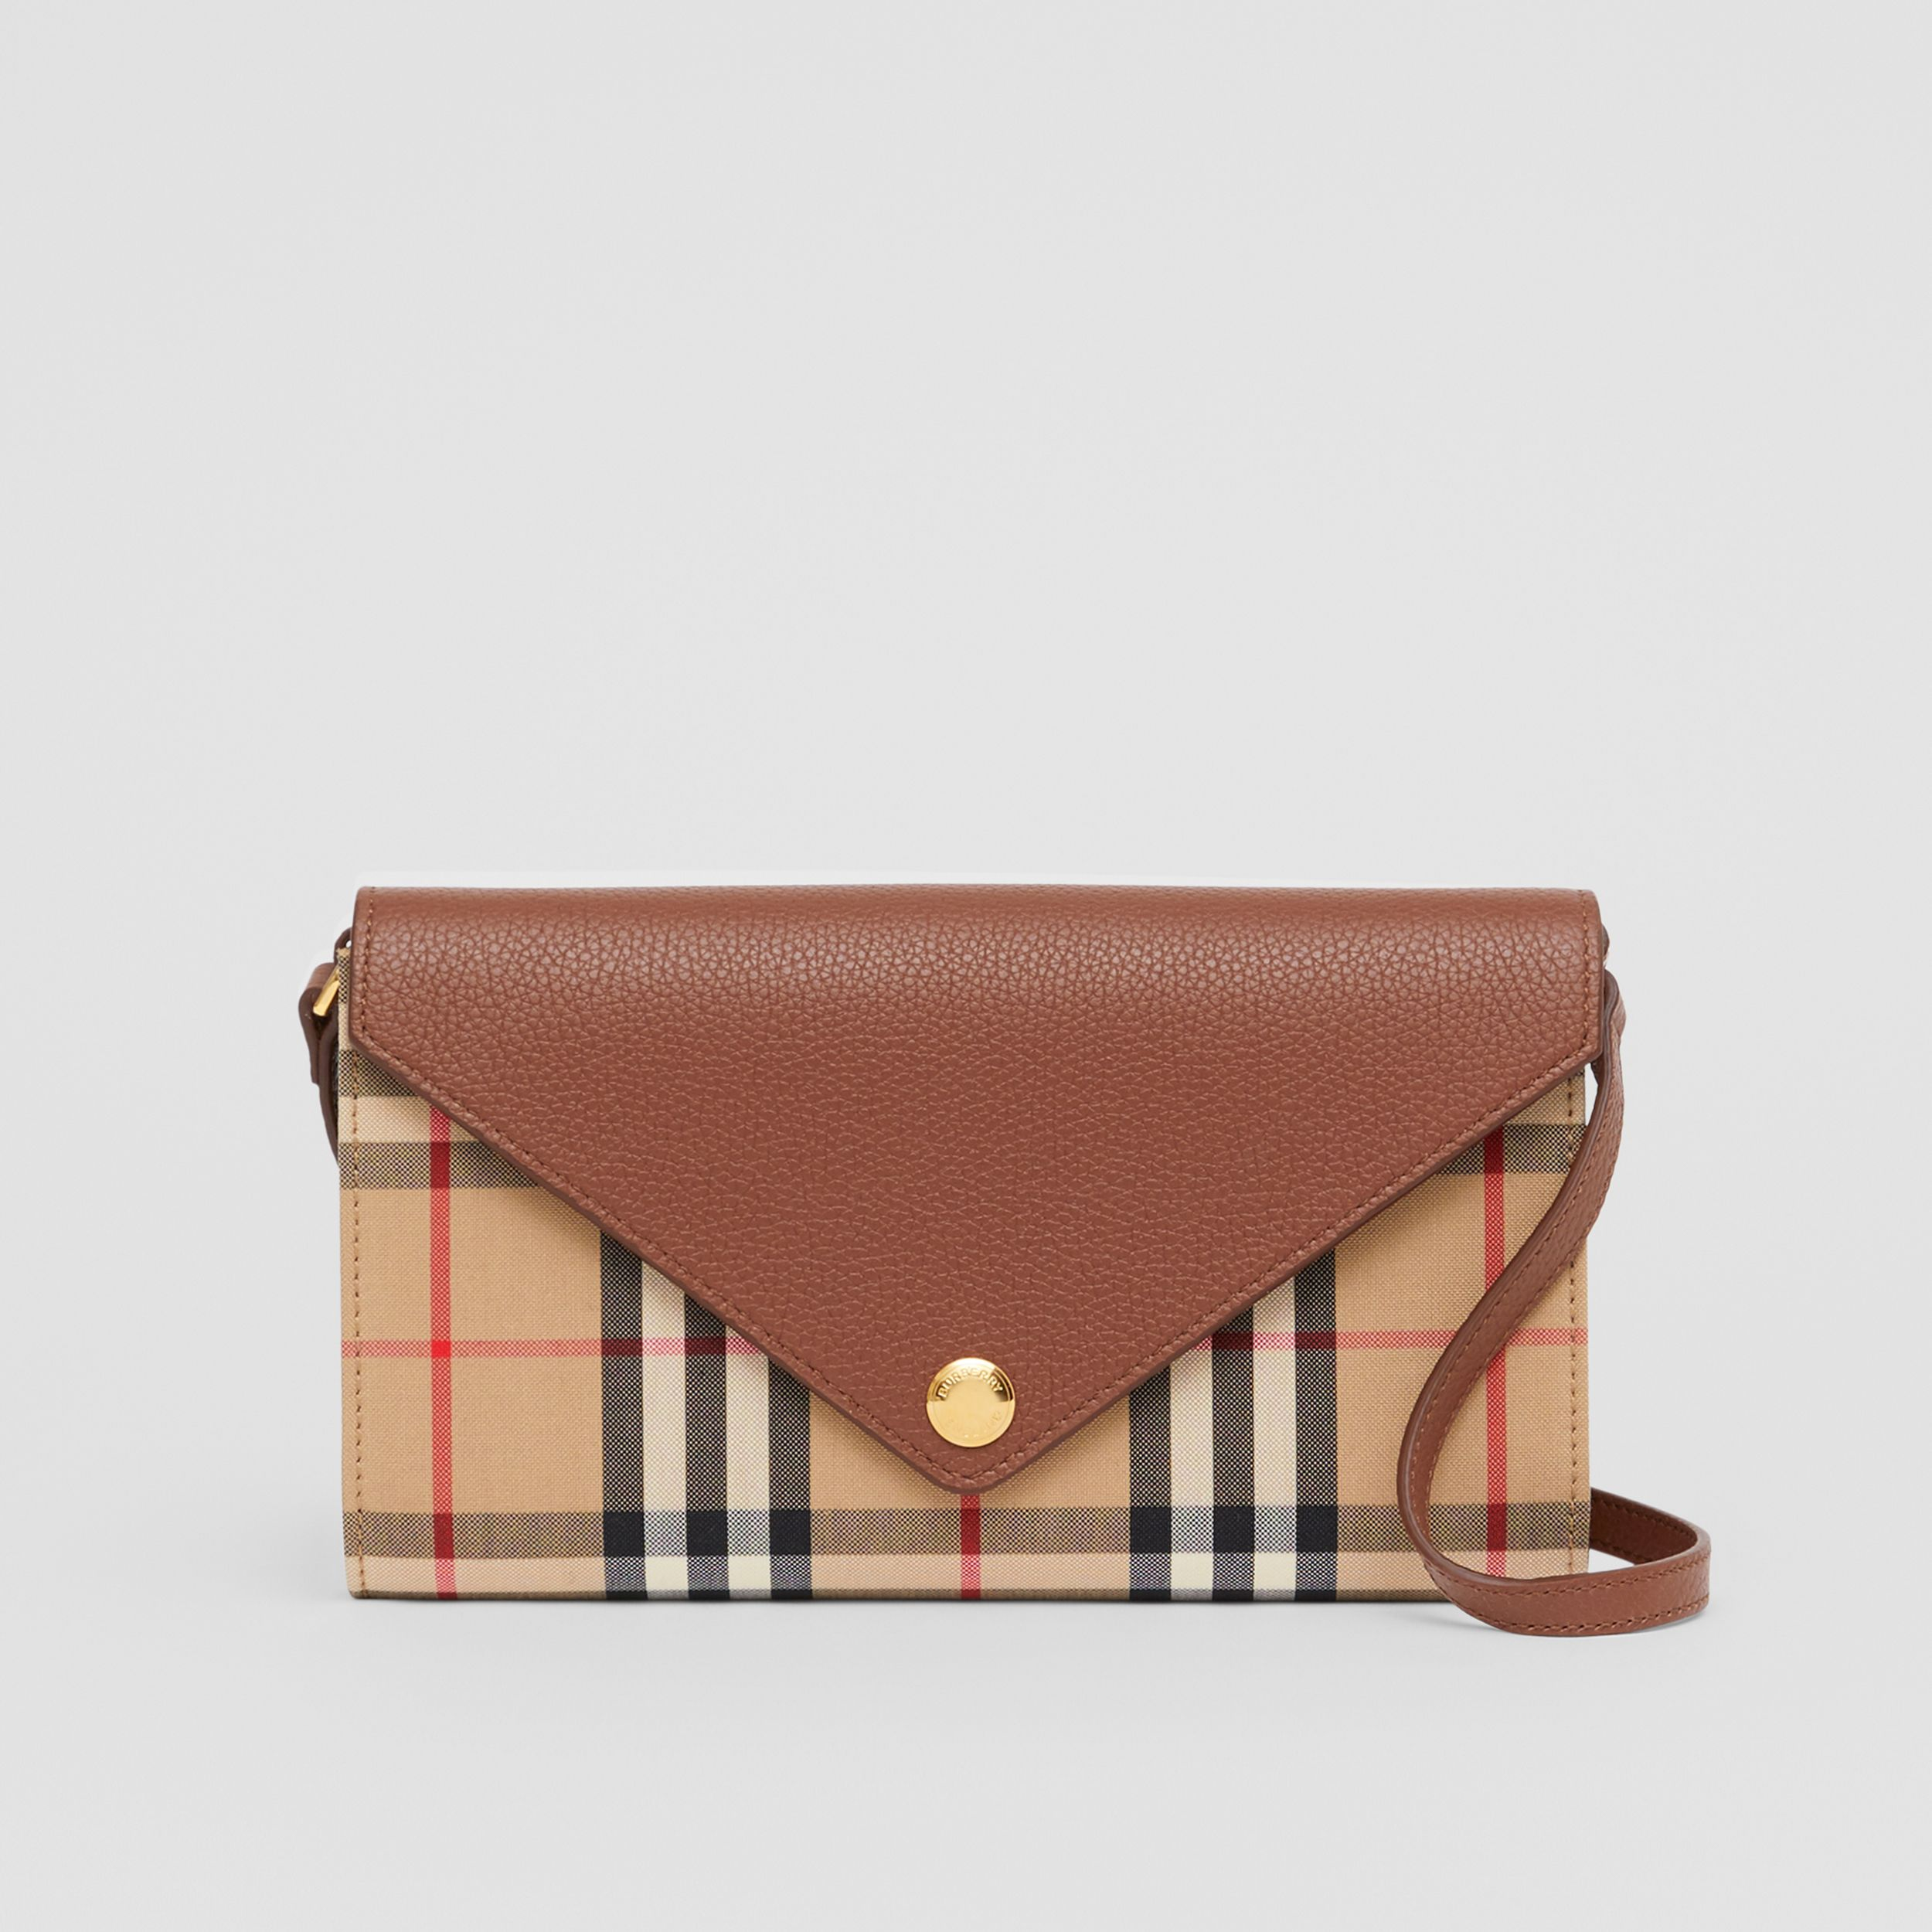 Vintage Check and Leather Wallet with Detachable Strap in Tan - Women | Burberry - 1